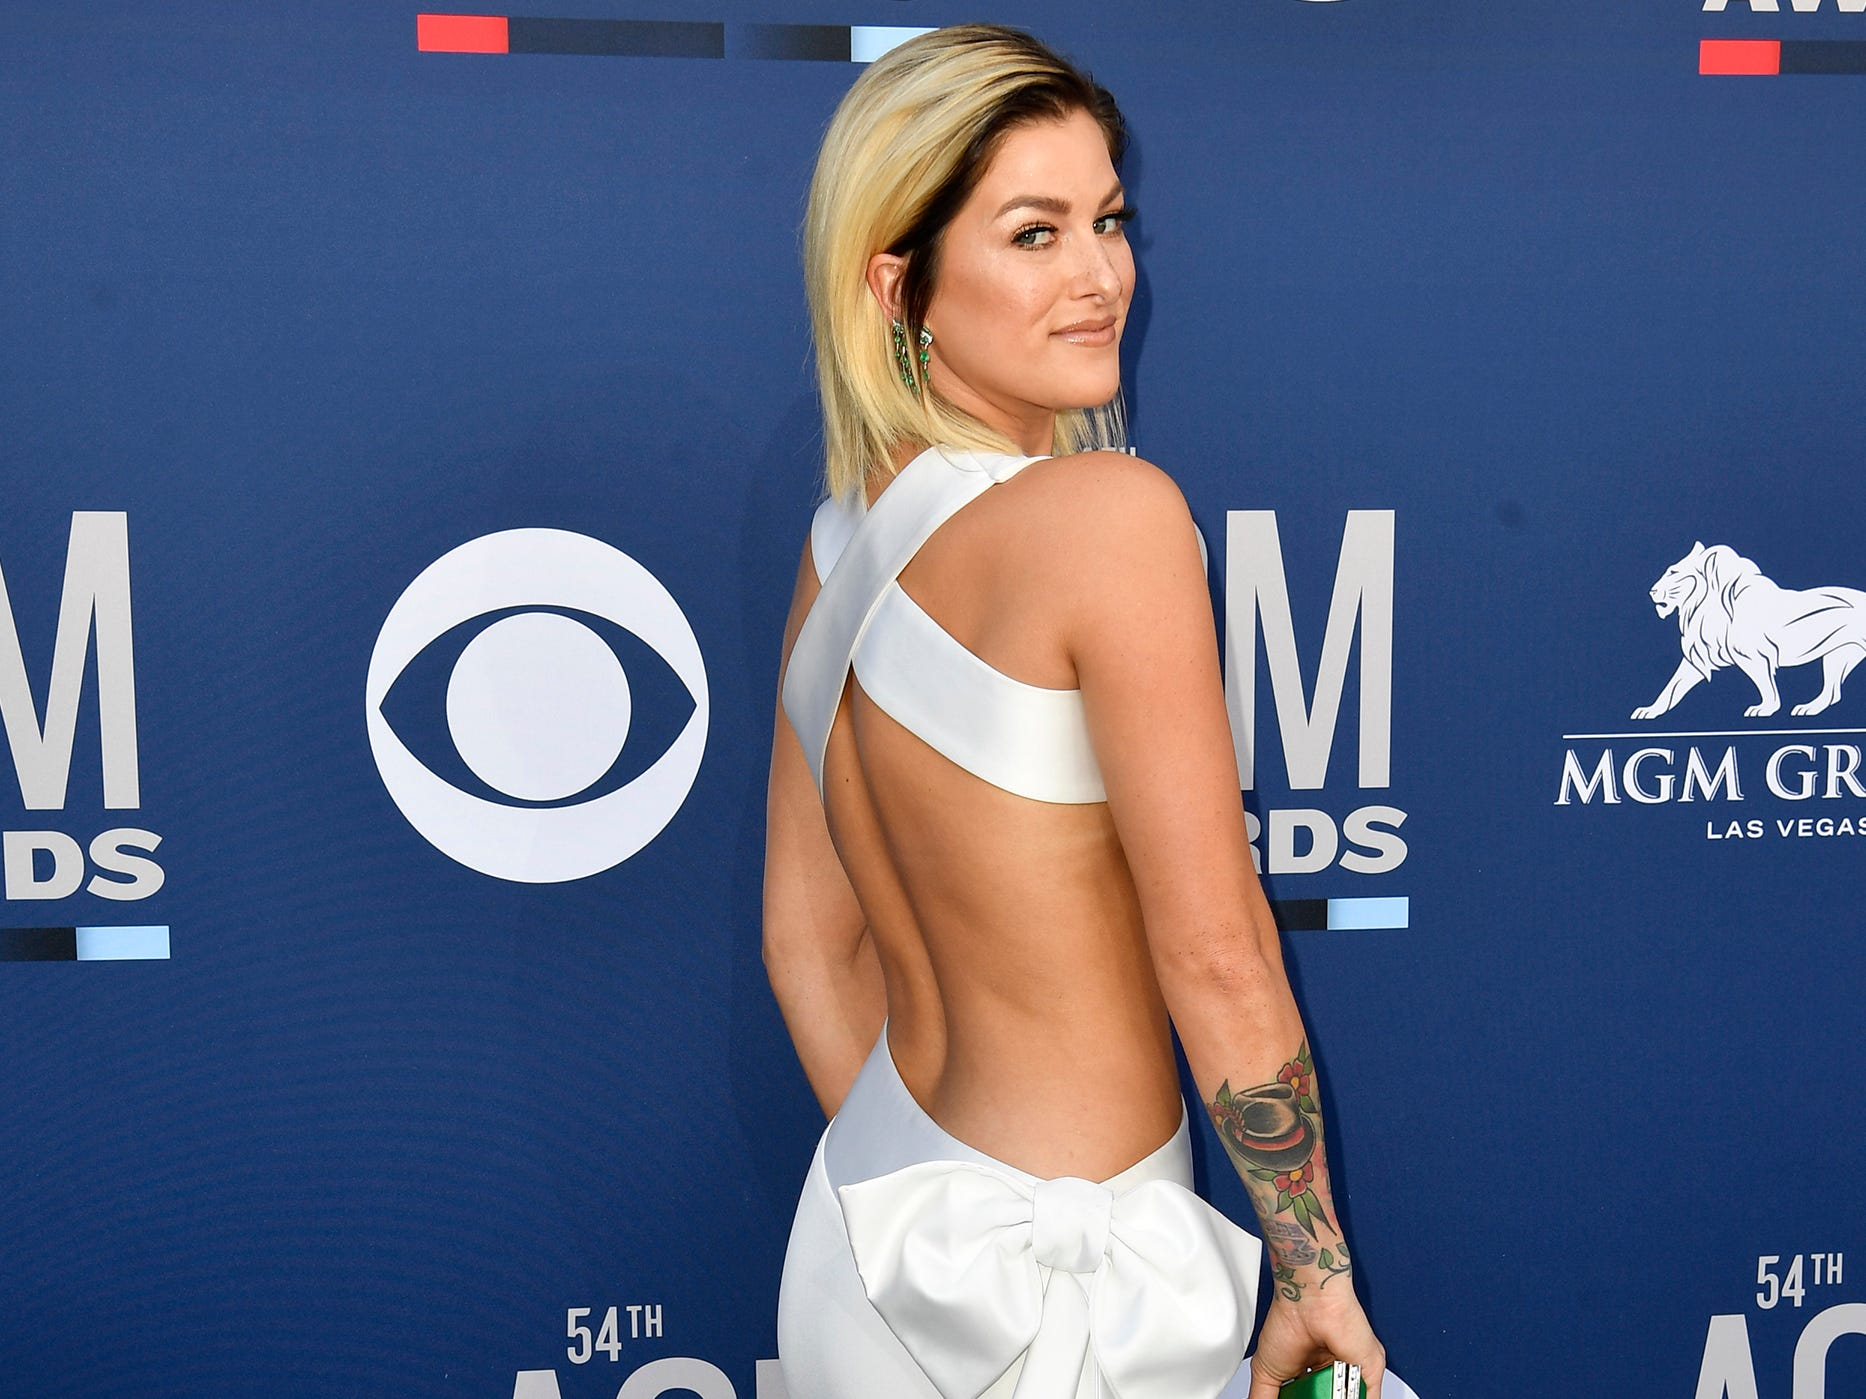 Cassadee Pope walks the red carpet at the 54TH Academy of Country Music Awards Sunday, April 7, 2019, in Las Vegas, Nev.